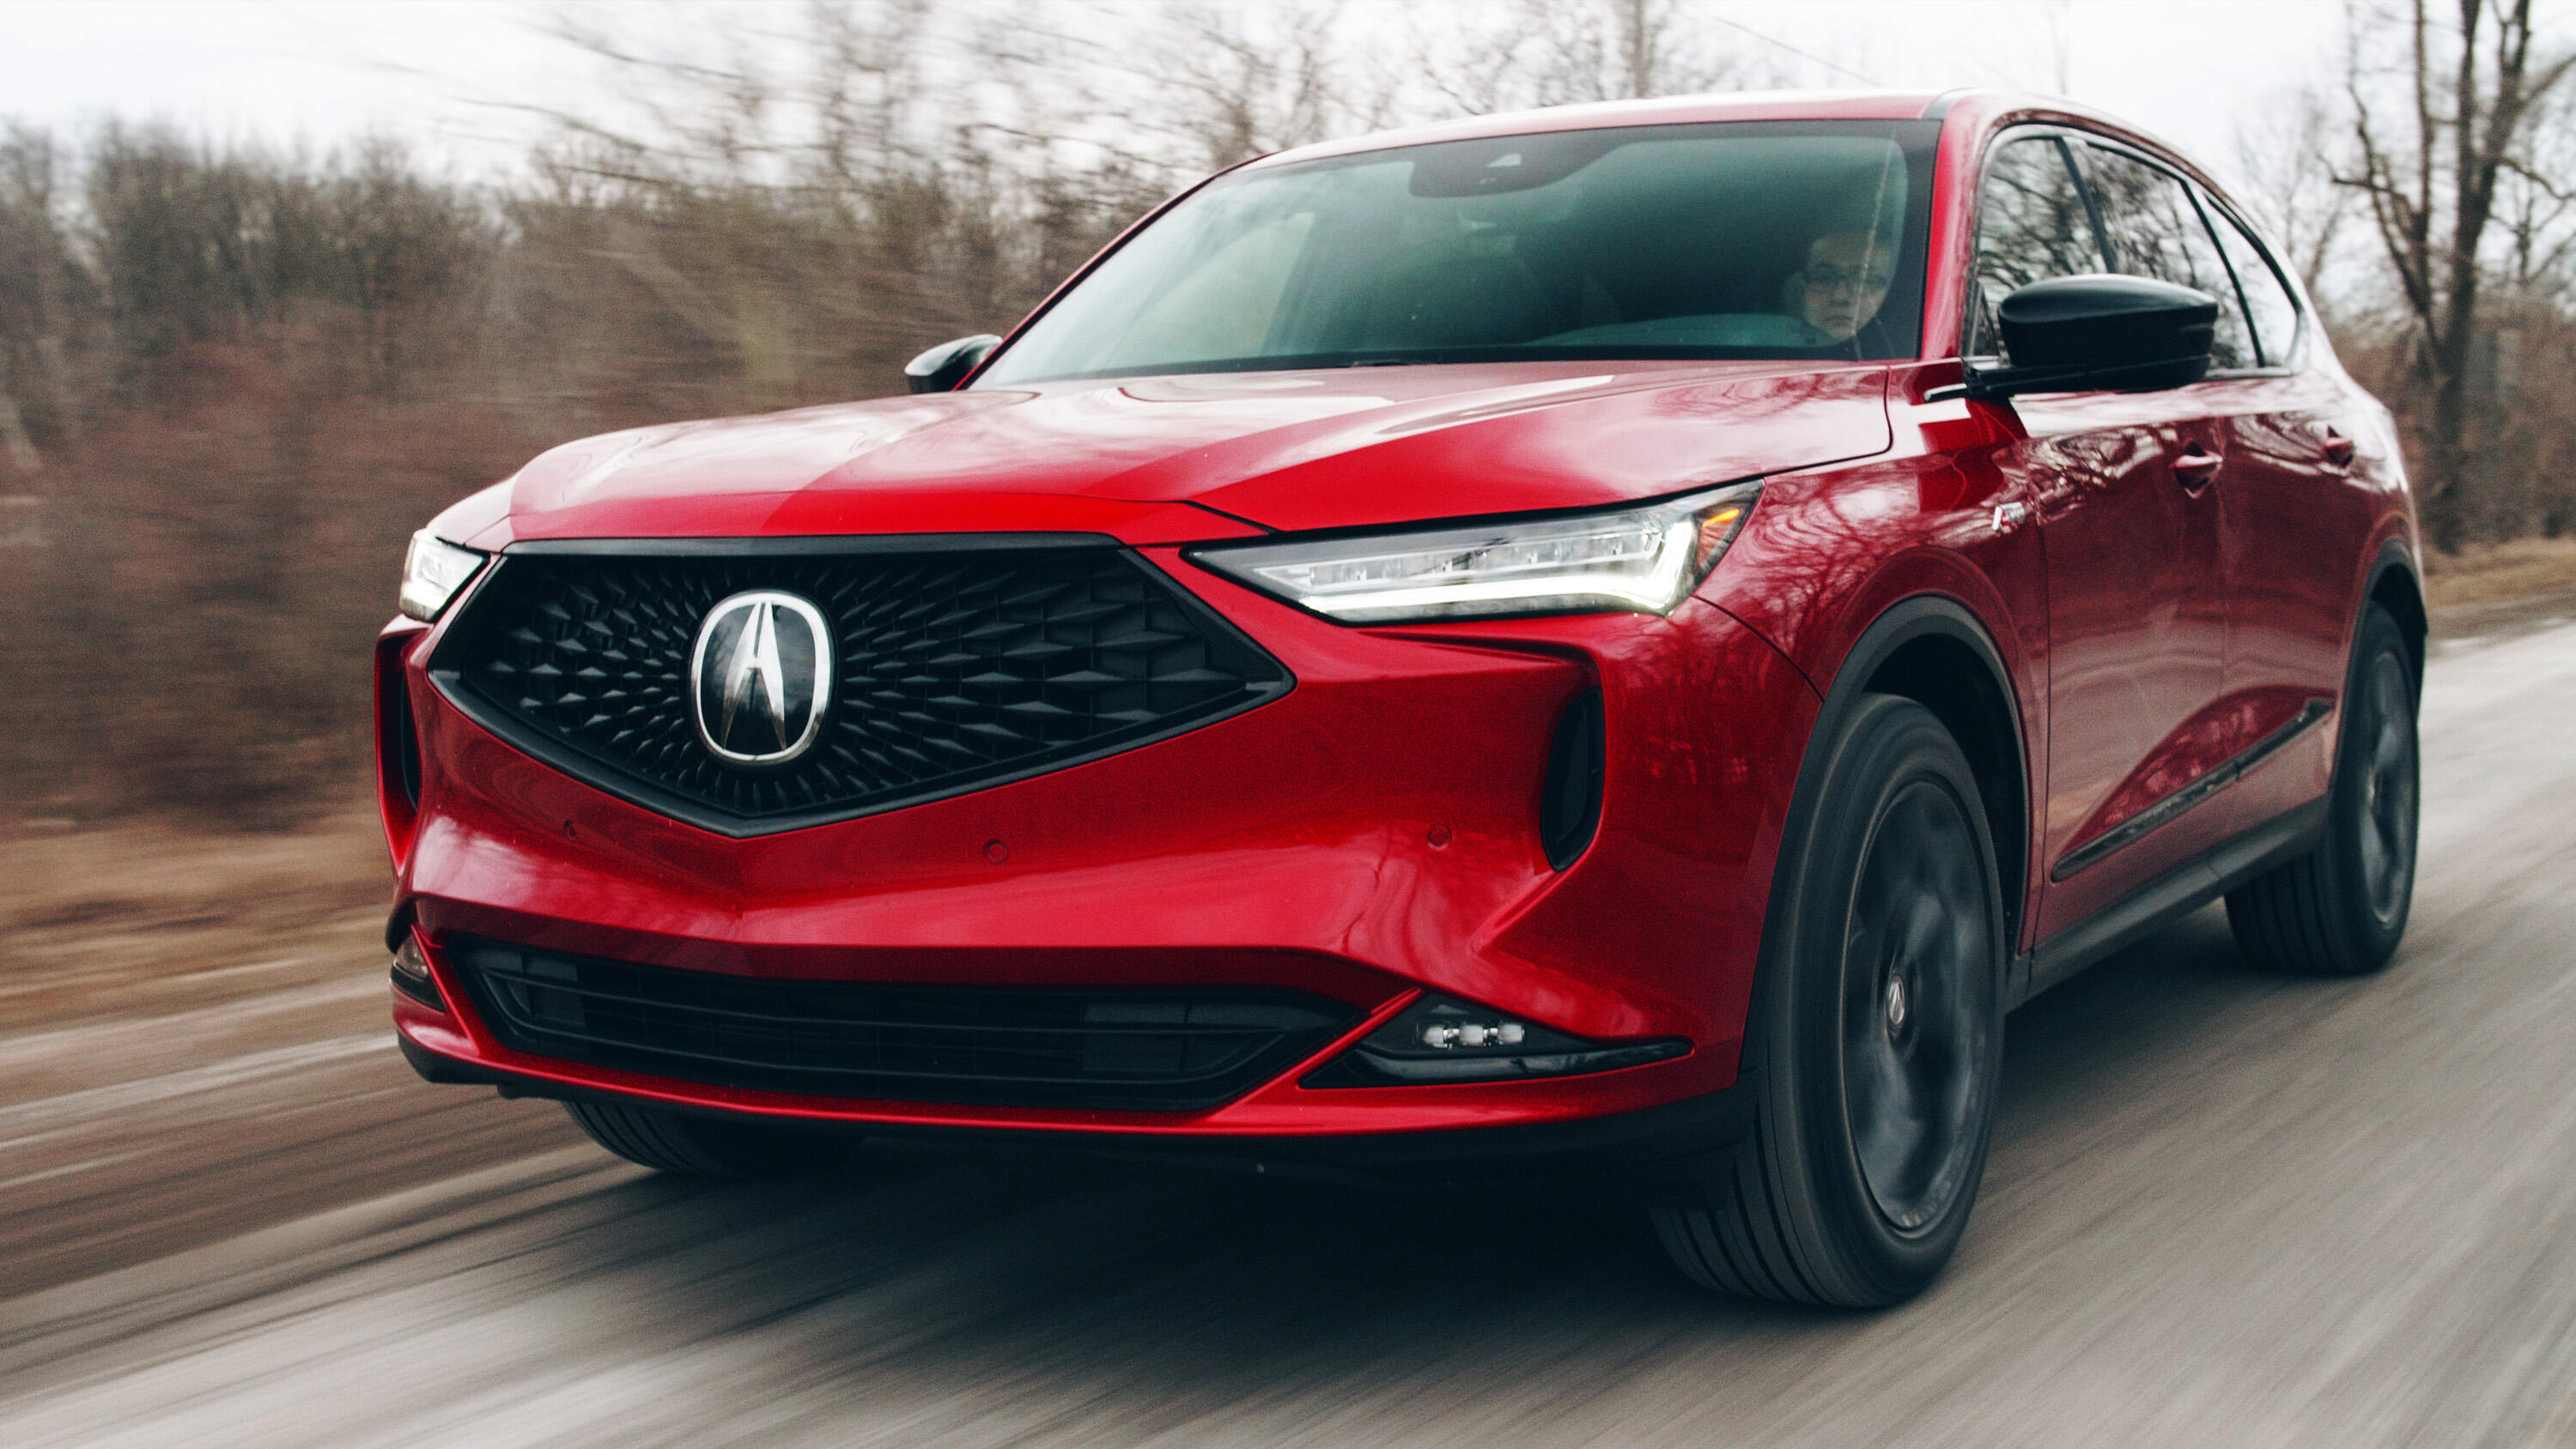 Video: 2022 Acura MDX is a sharper and smarter luxury SUV